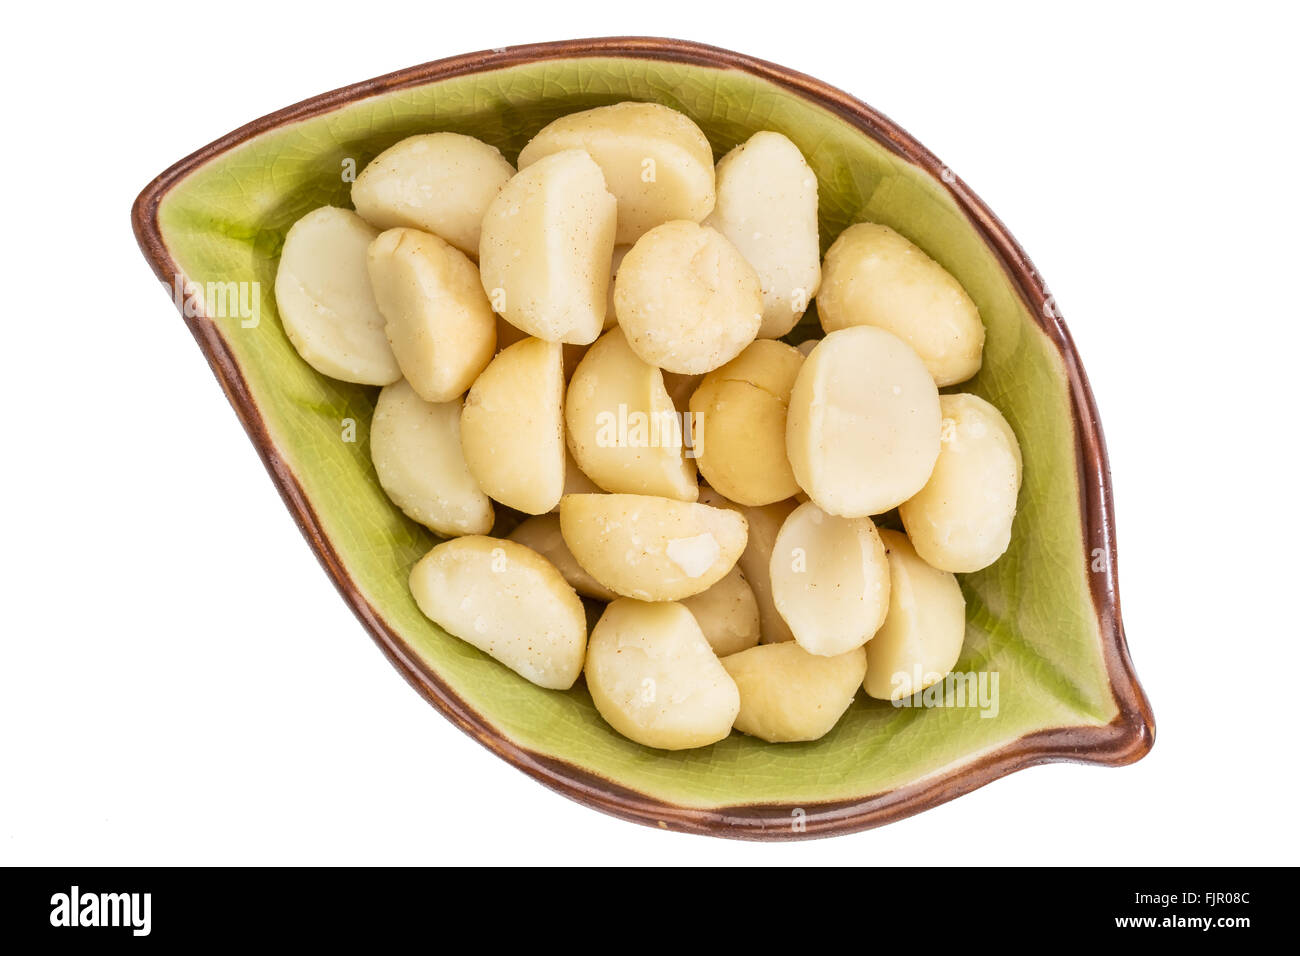 macadamia nuts  in an isolated leaf shaped ceramic bowl, top view Stock Photo